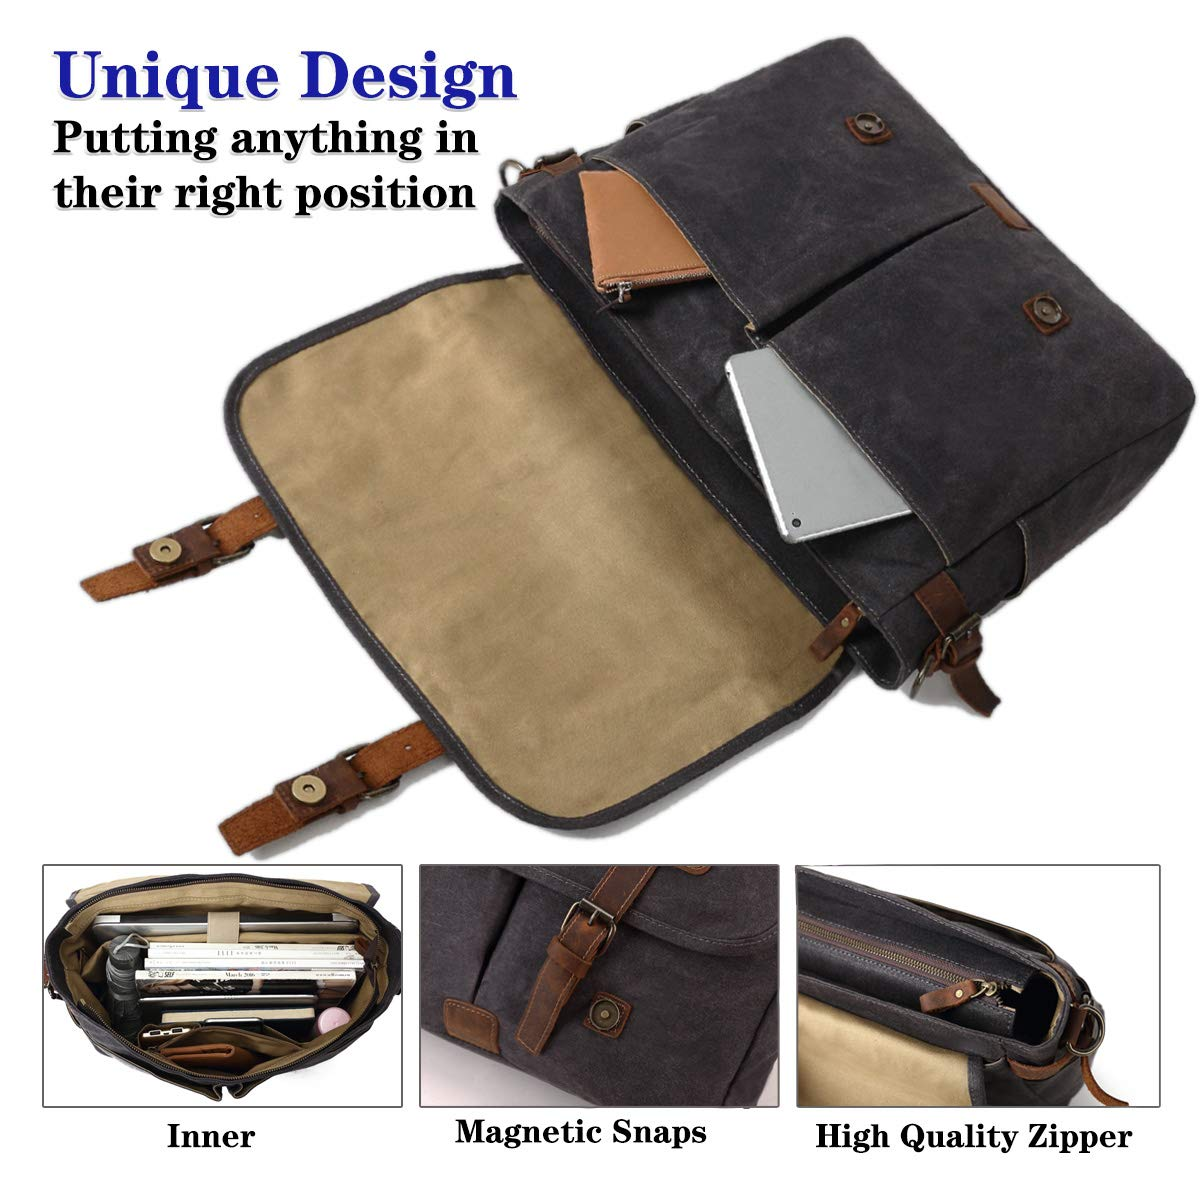 SOAEON Mens Messenger Bag,Laptop Bag 15.6 inch,Waterproof Vintage Canvas Briefcase, Leather Computer Bag for Business&School Travel Grey by SOAEON (Image #5)